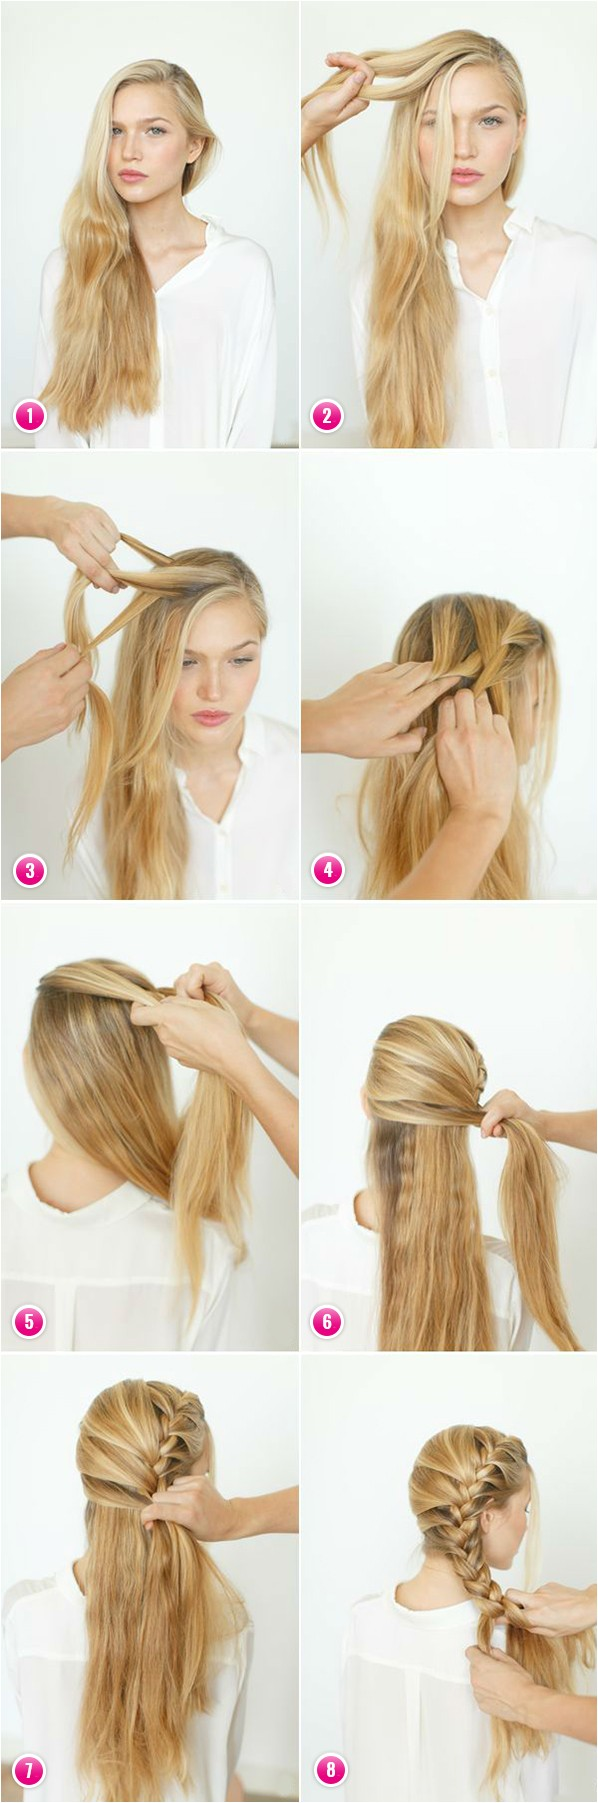 How to Make Easy Hairstyle for Long Hair Creative Hairstyles for Long Hair